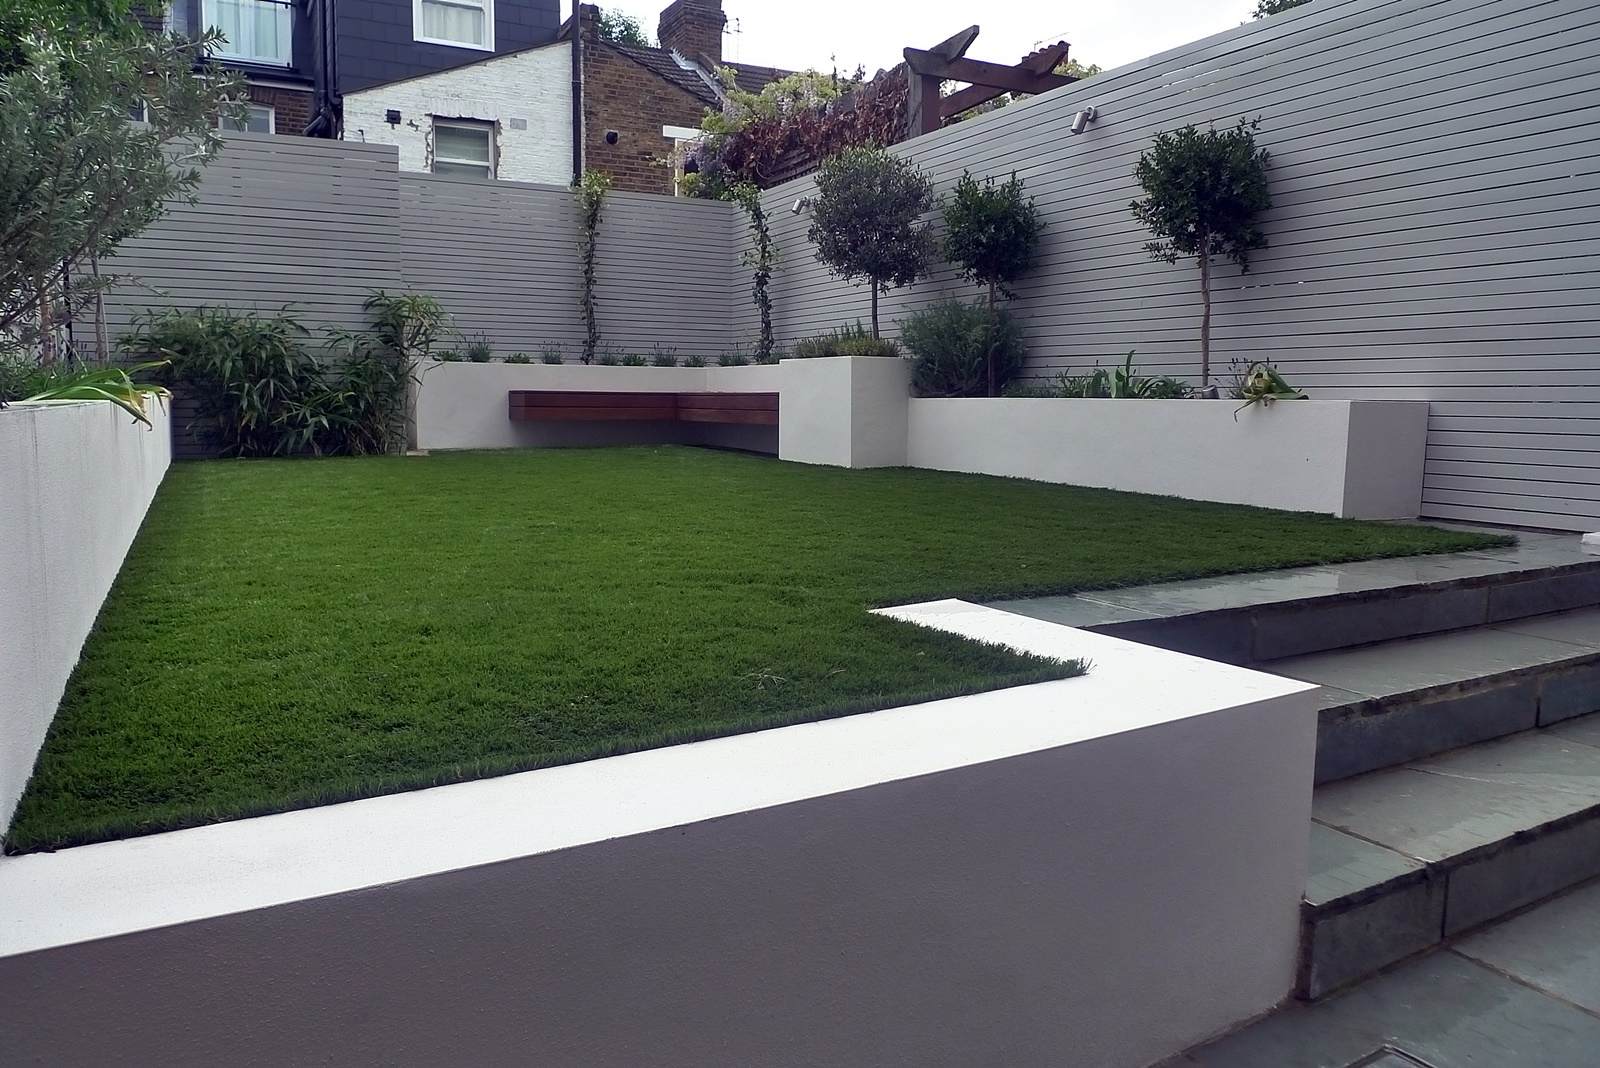 artificial grass easi grass grey painted fences modern garden design fulham chelsea kensington mayfair westminster docklands london